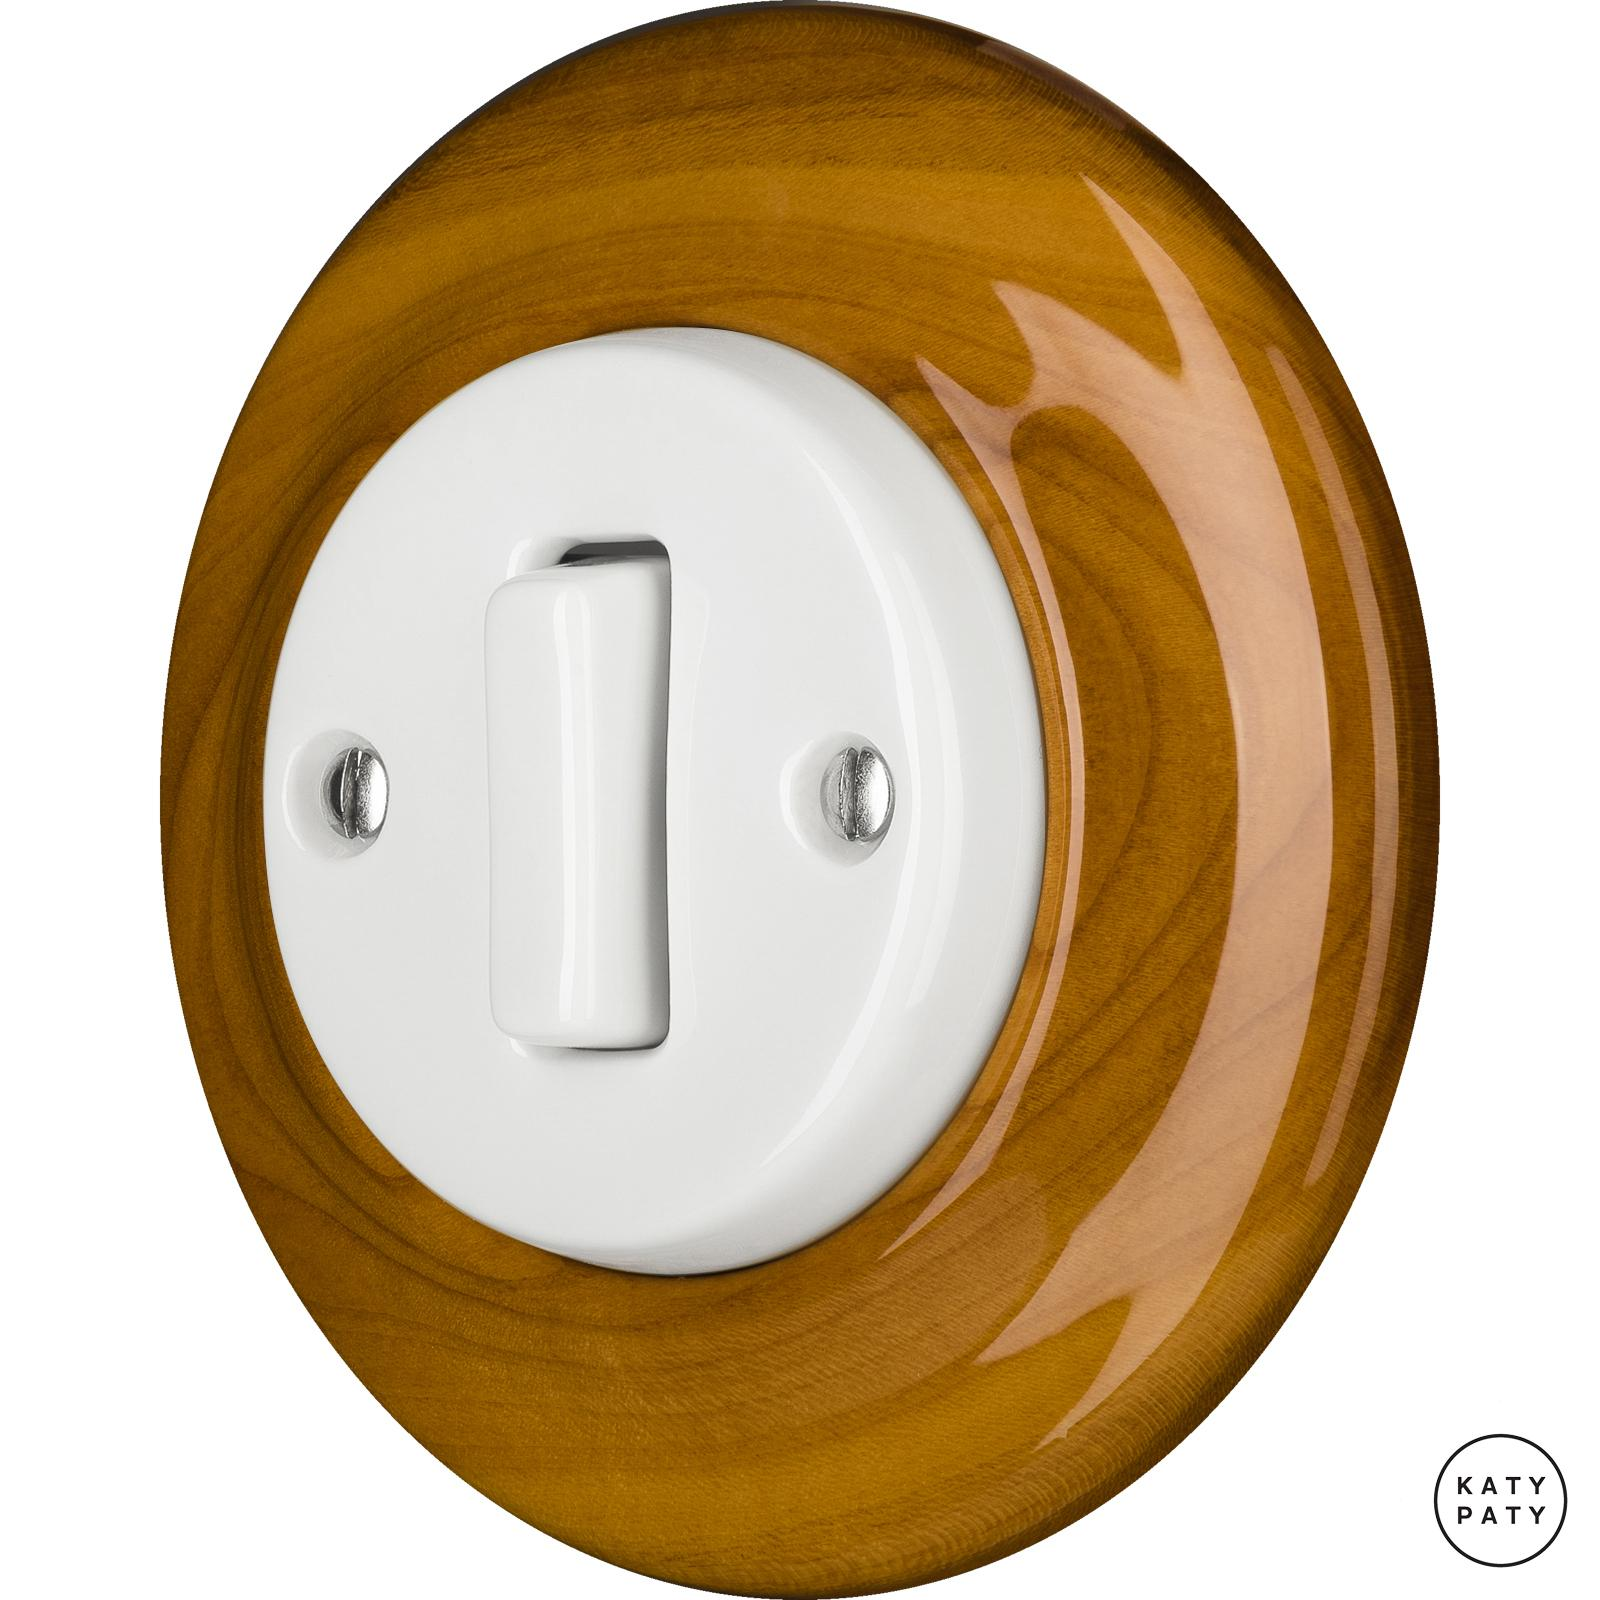 Porcelain switches - a single gang - SLIM ()  - PADELUS | Katy Paty